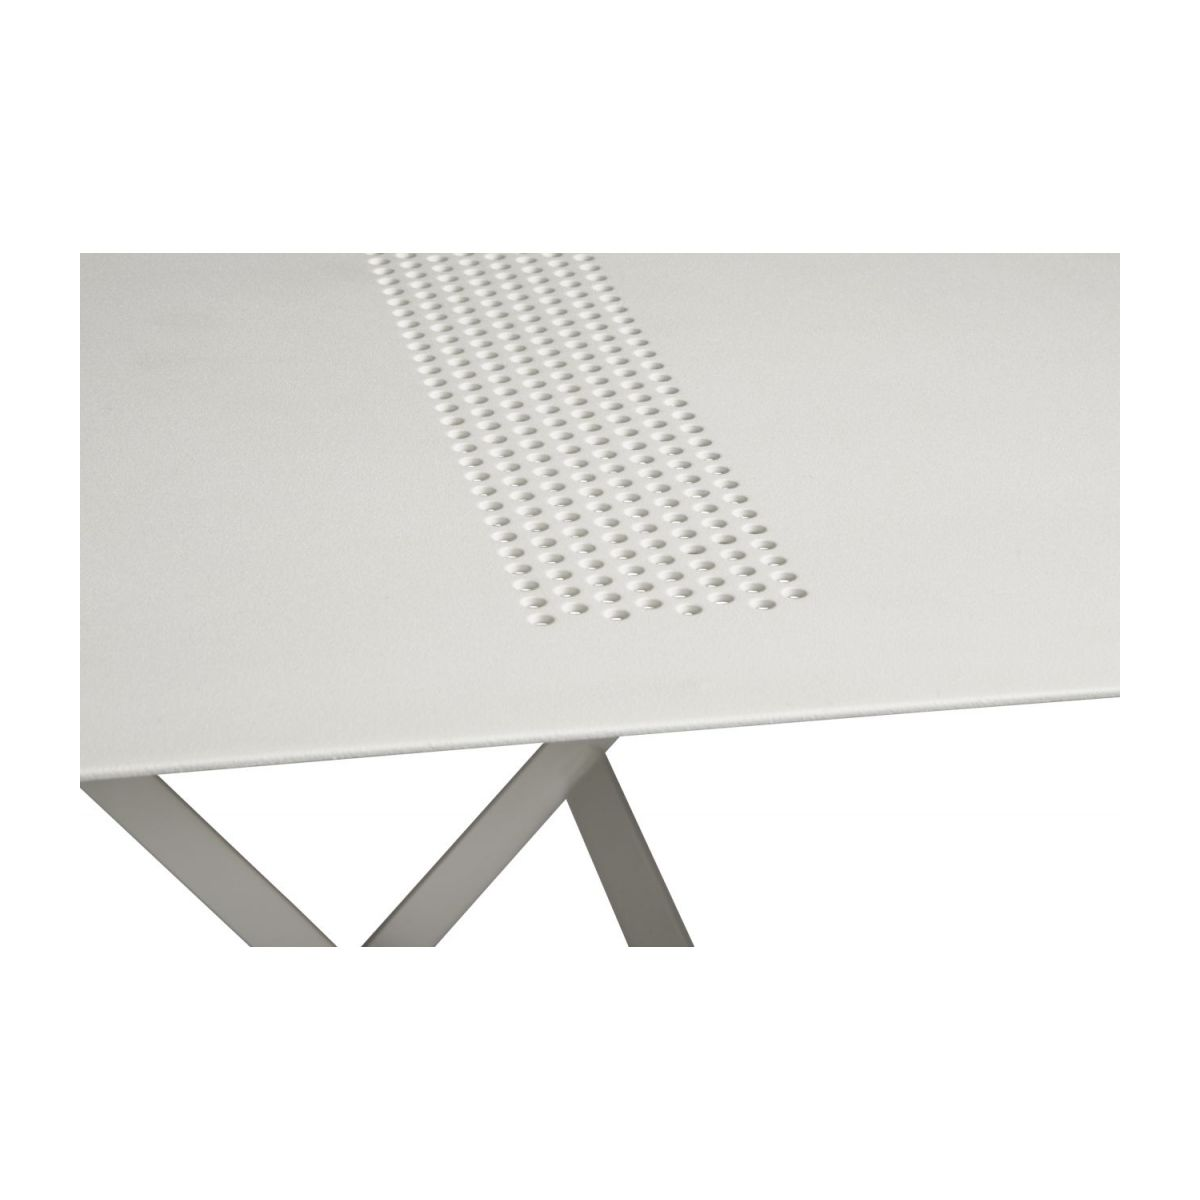 Mesa plegable de metal - Blanco n°7